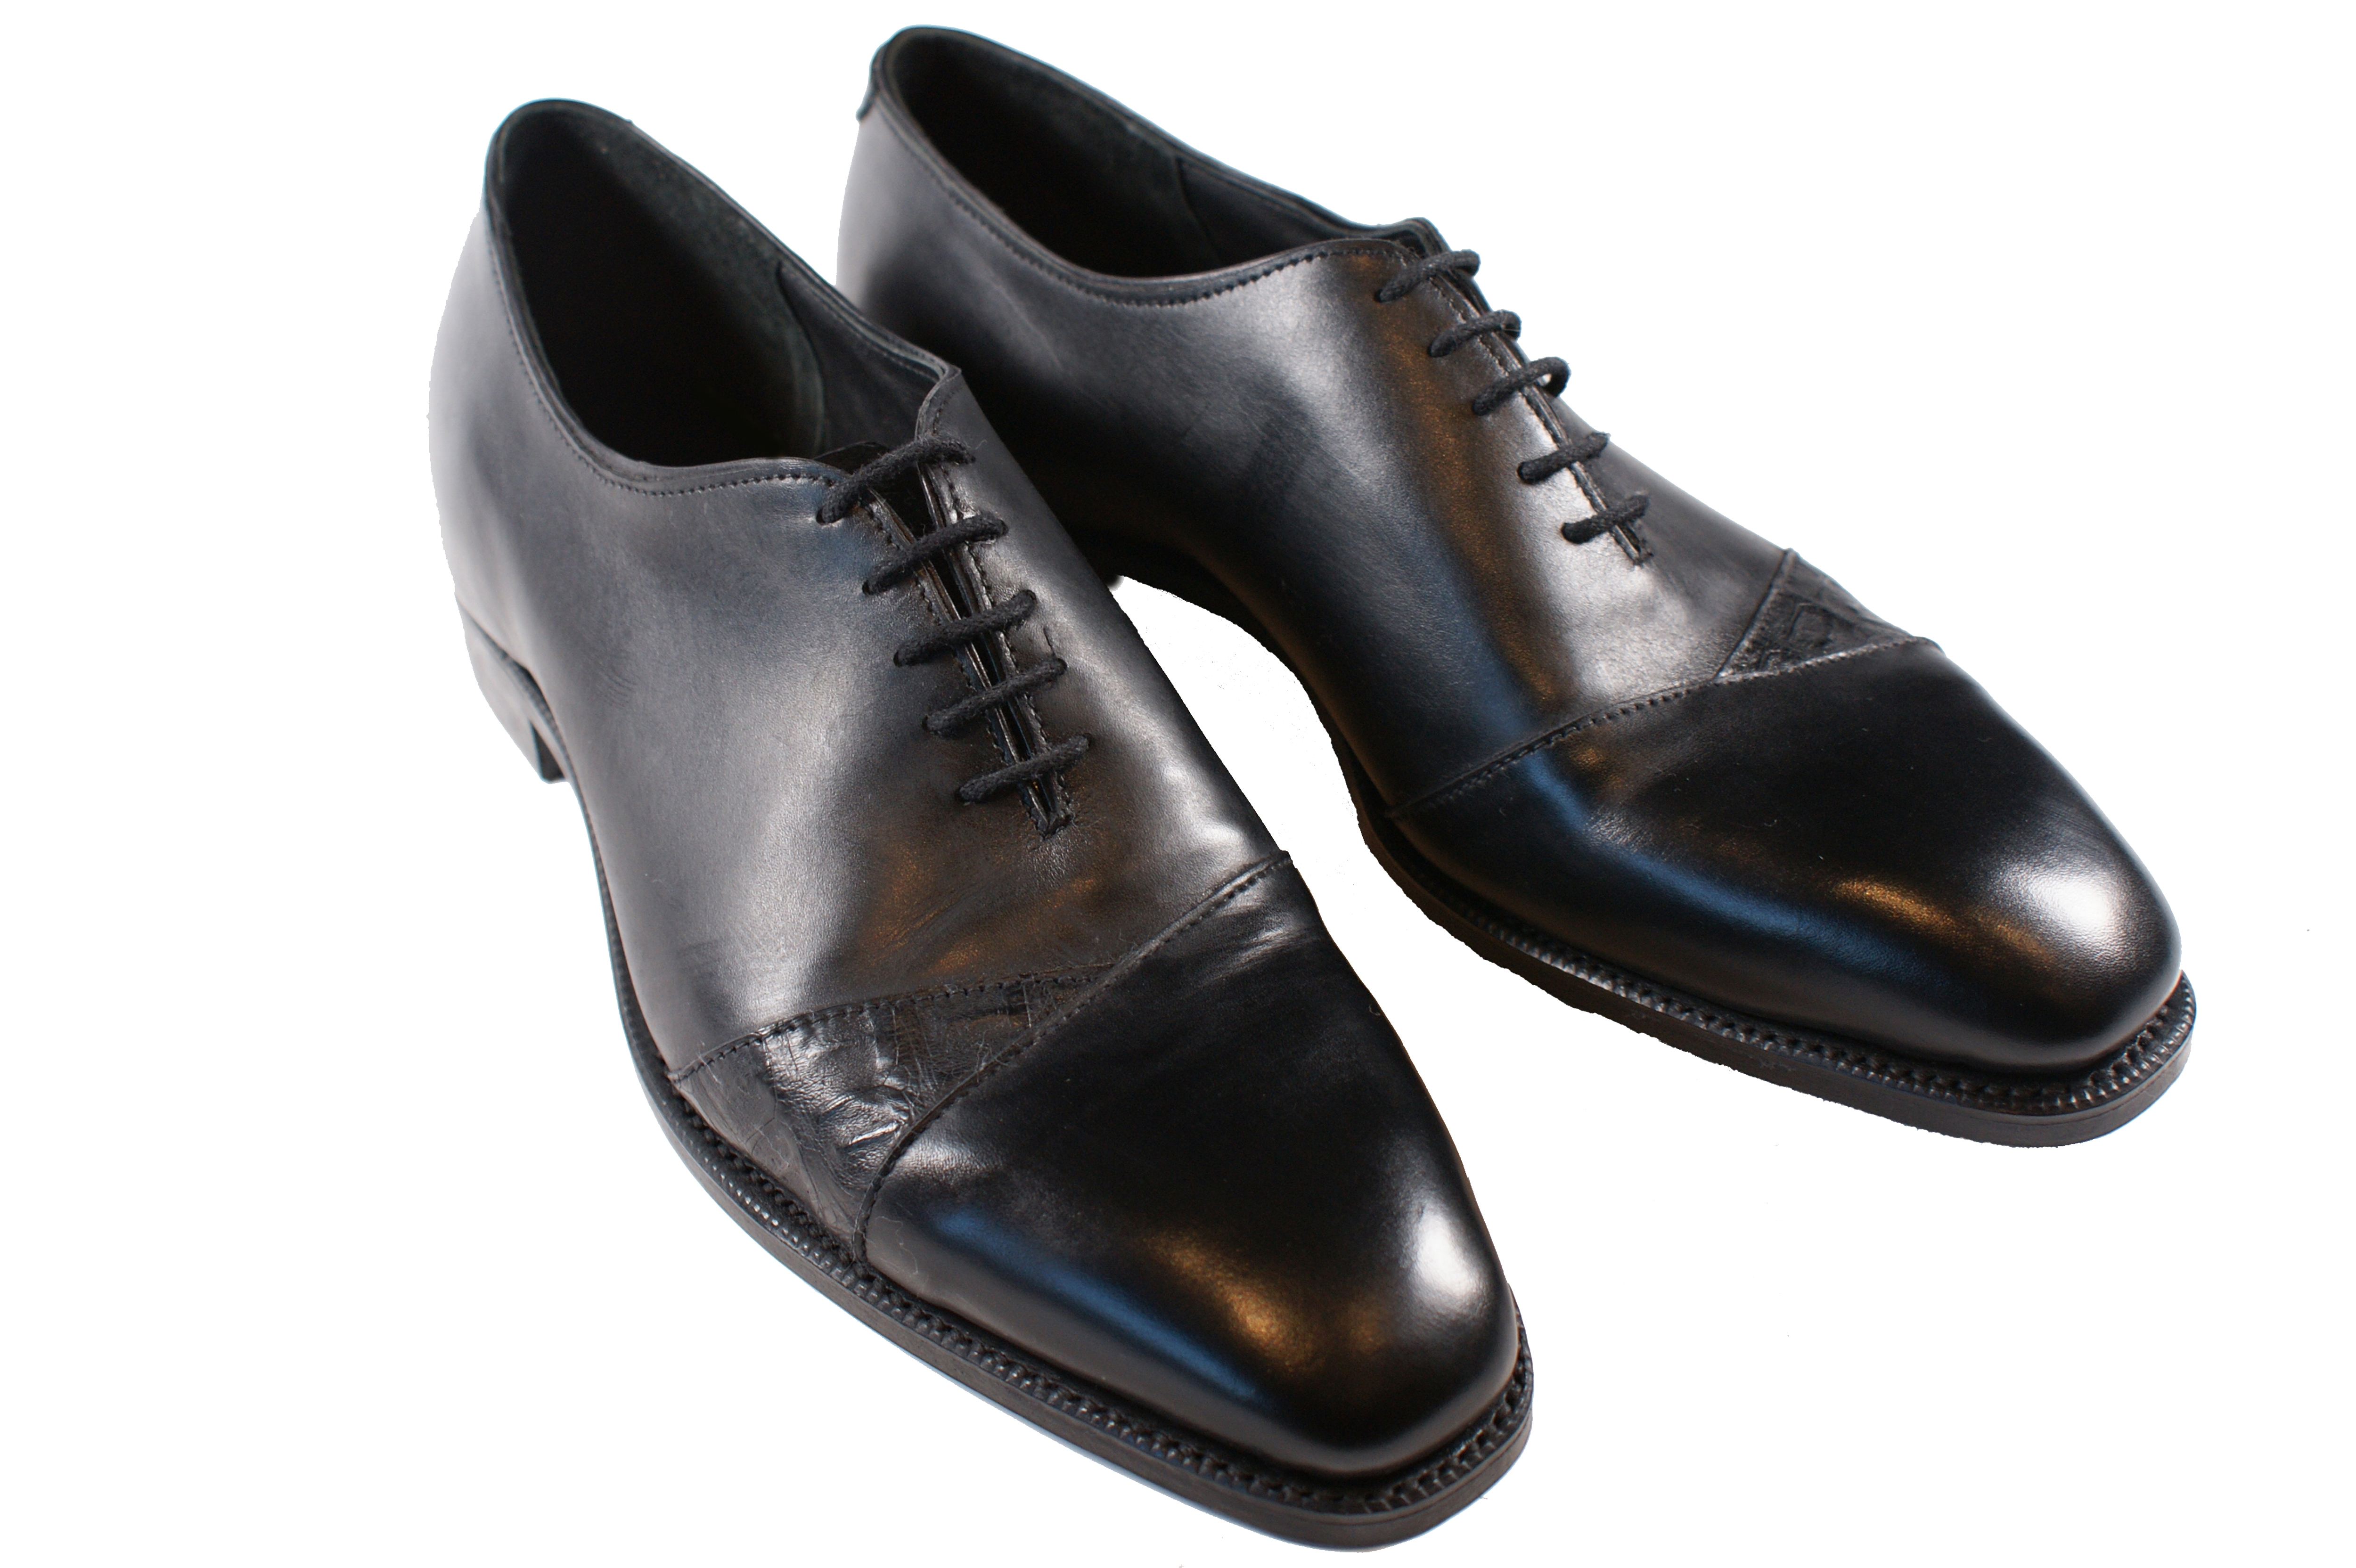 Gilbert & Bailey Black Oxfords